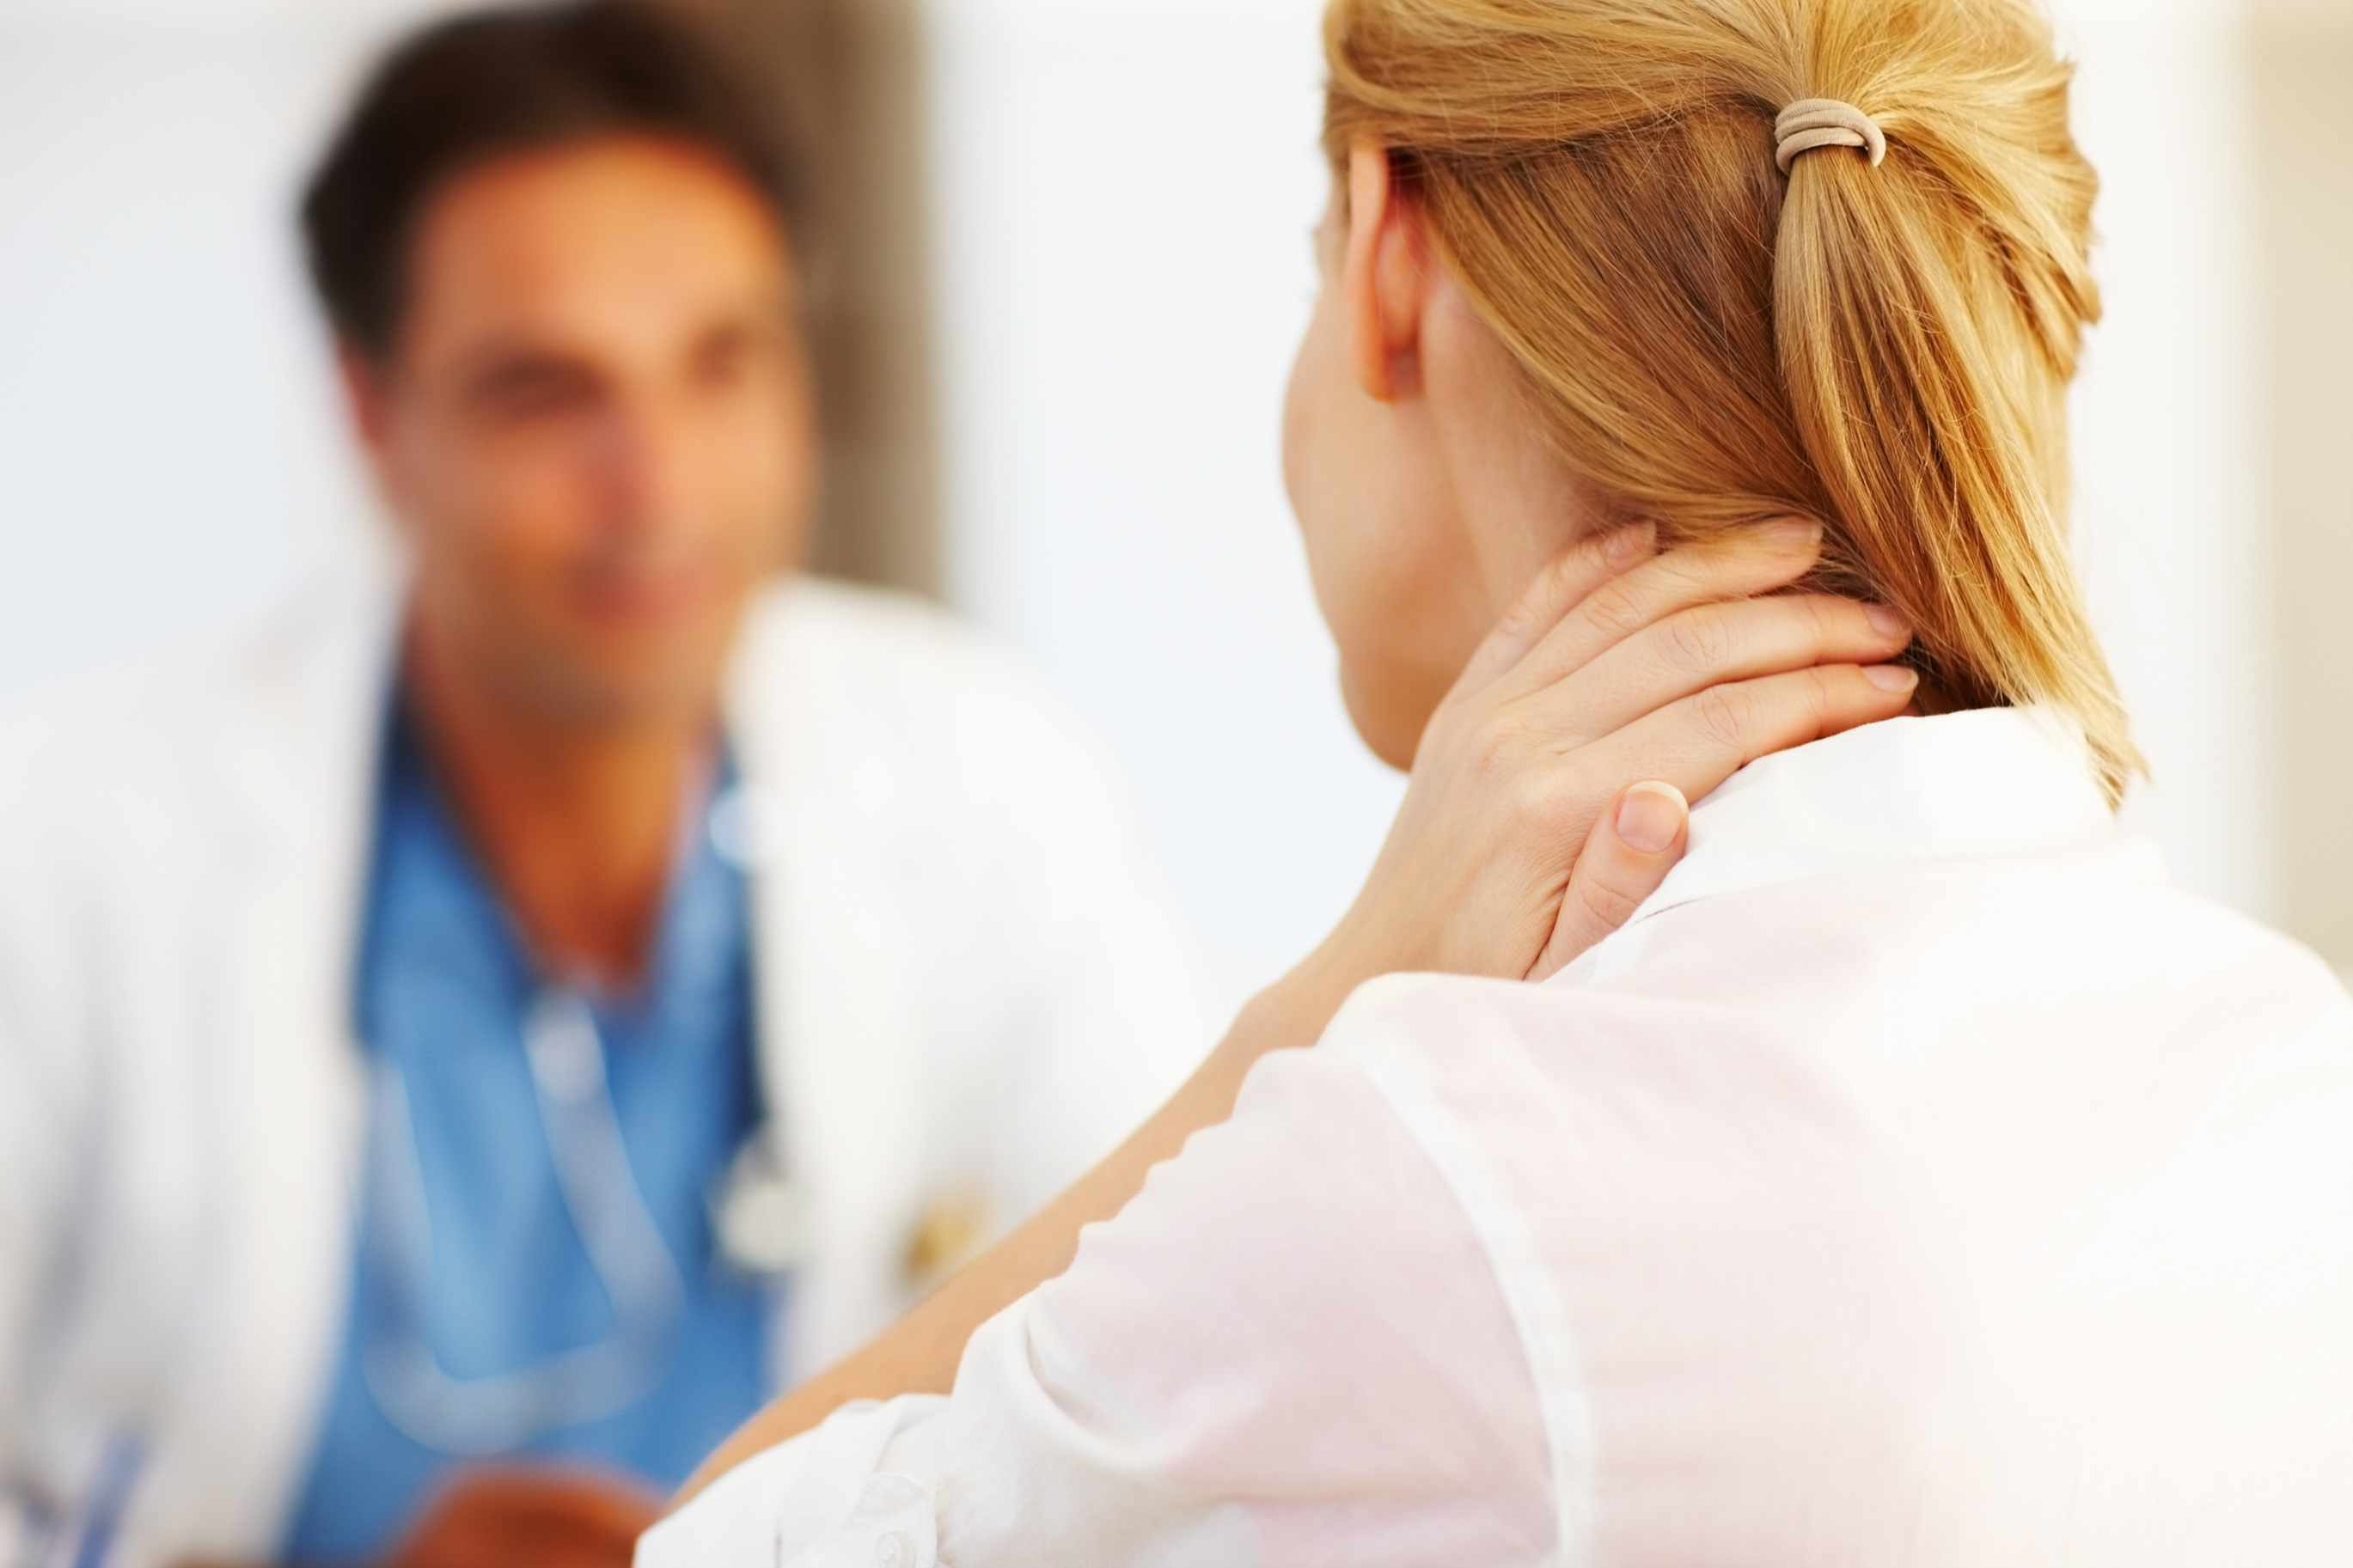 Woman talking to her doctor holding the back of her neck in pain